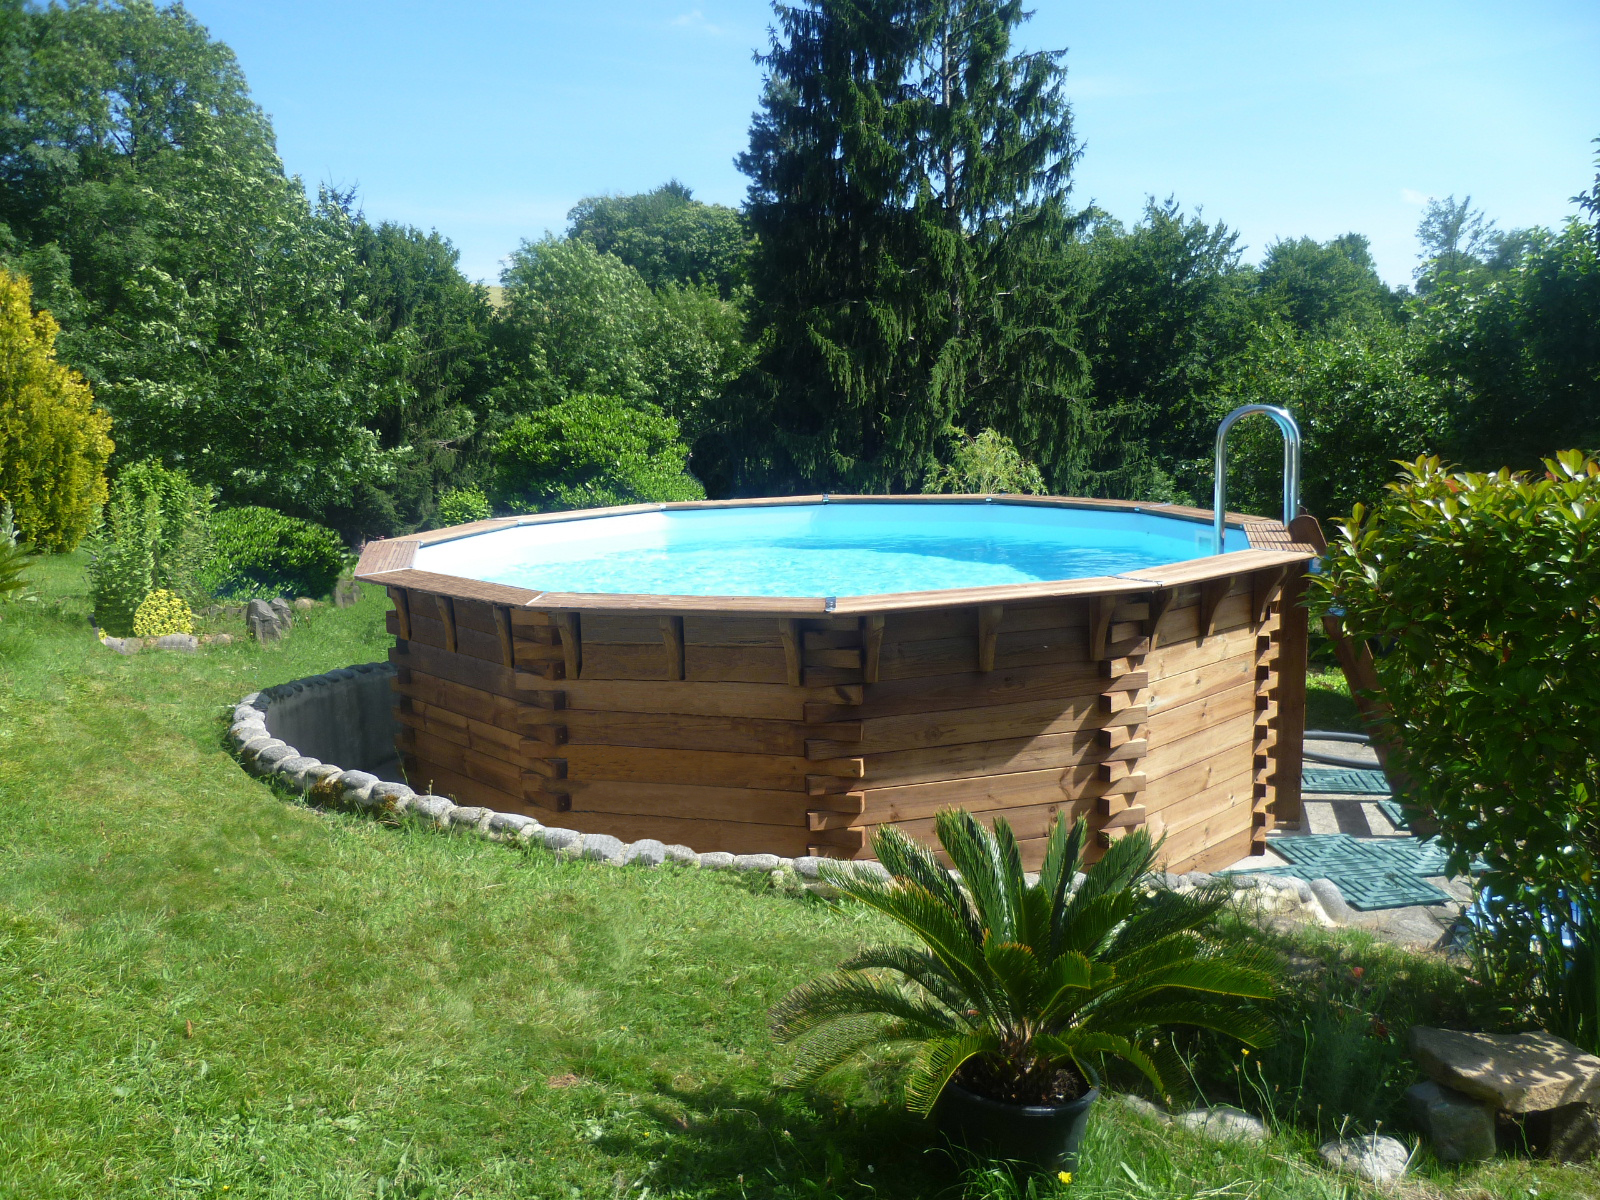 Piscine maeva500 hors sol piveteaubois piveteau bois for Amenagement piscine hors sol photo